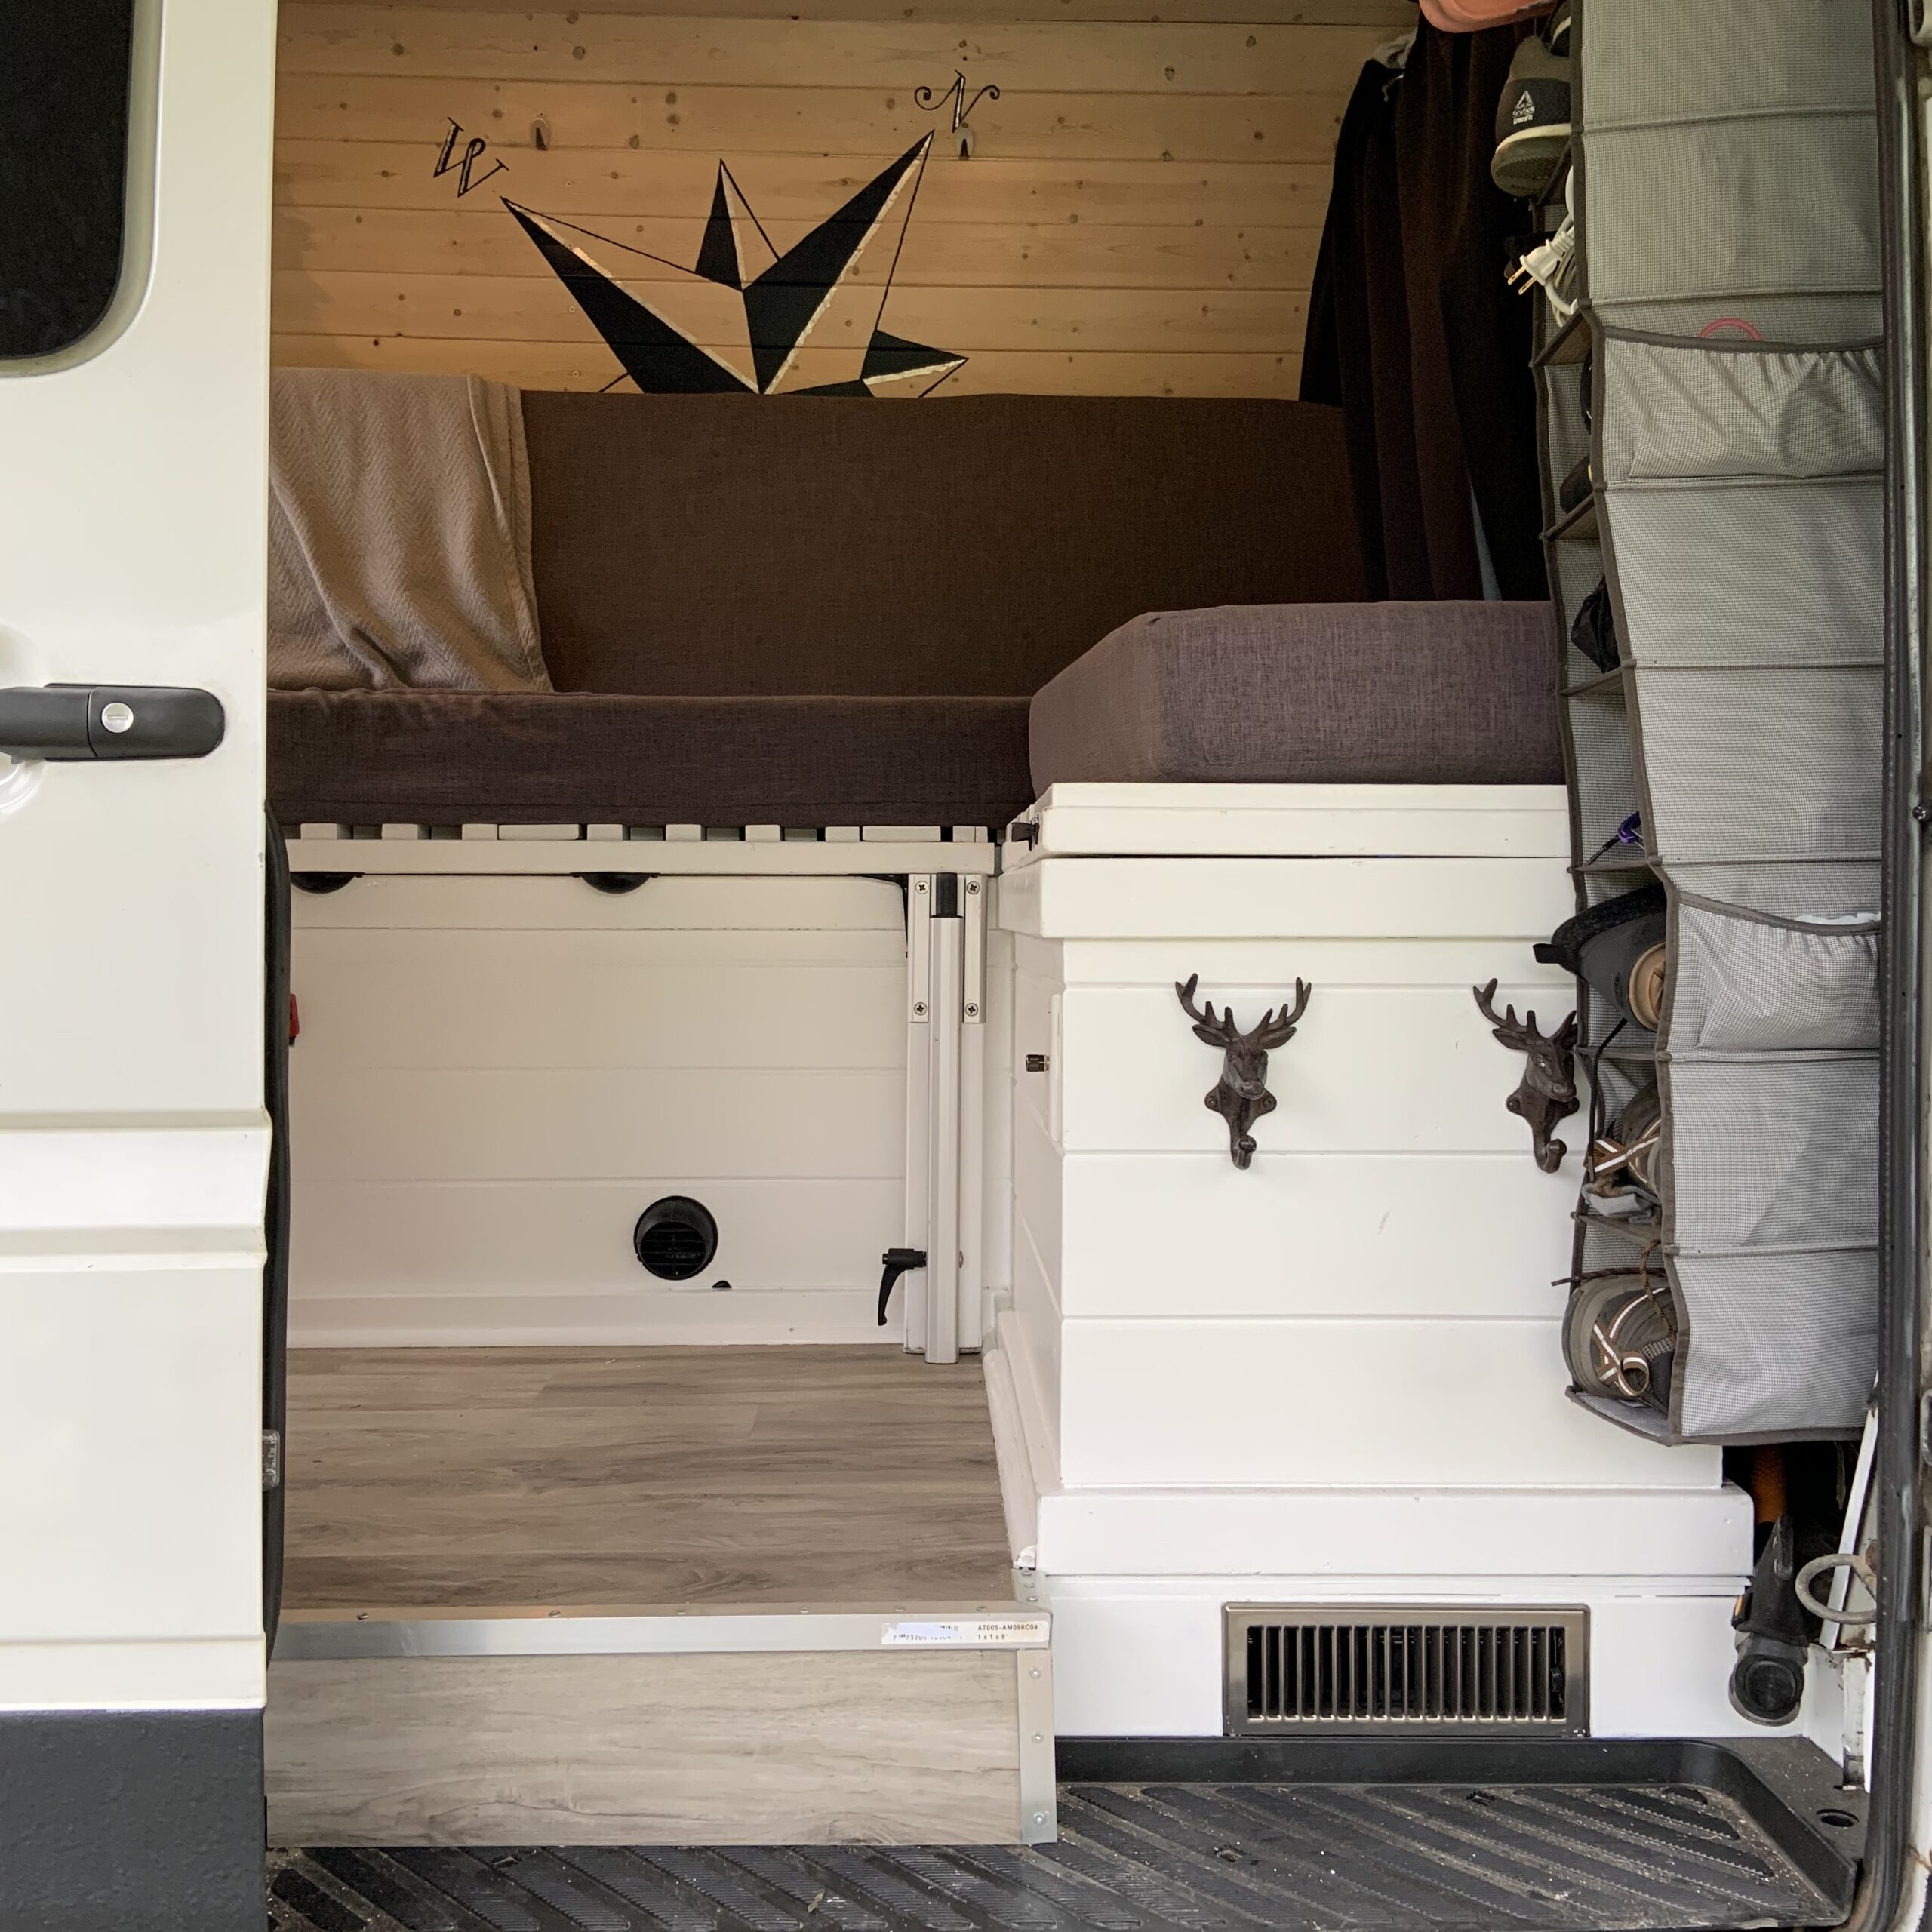 Looking into the van as the sliding door is open. The bench and bed set up is in clear view.